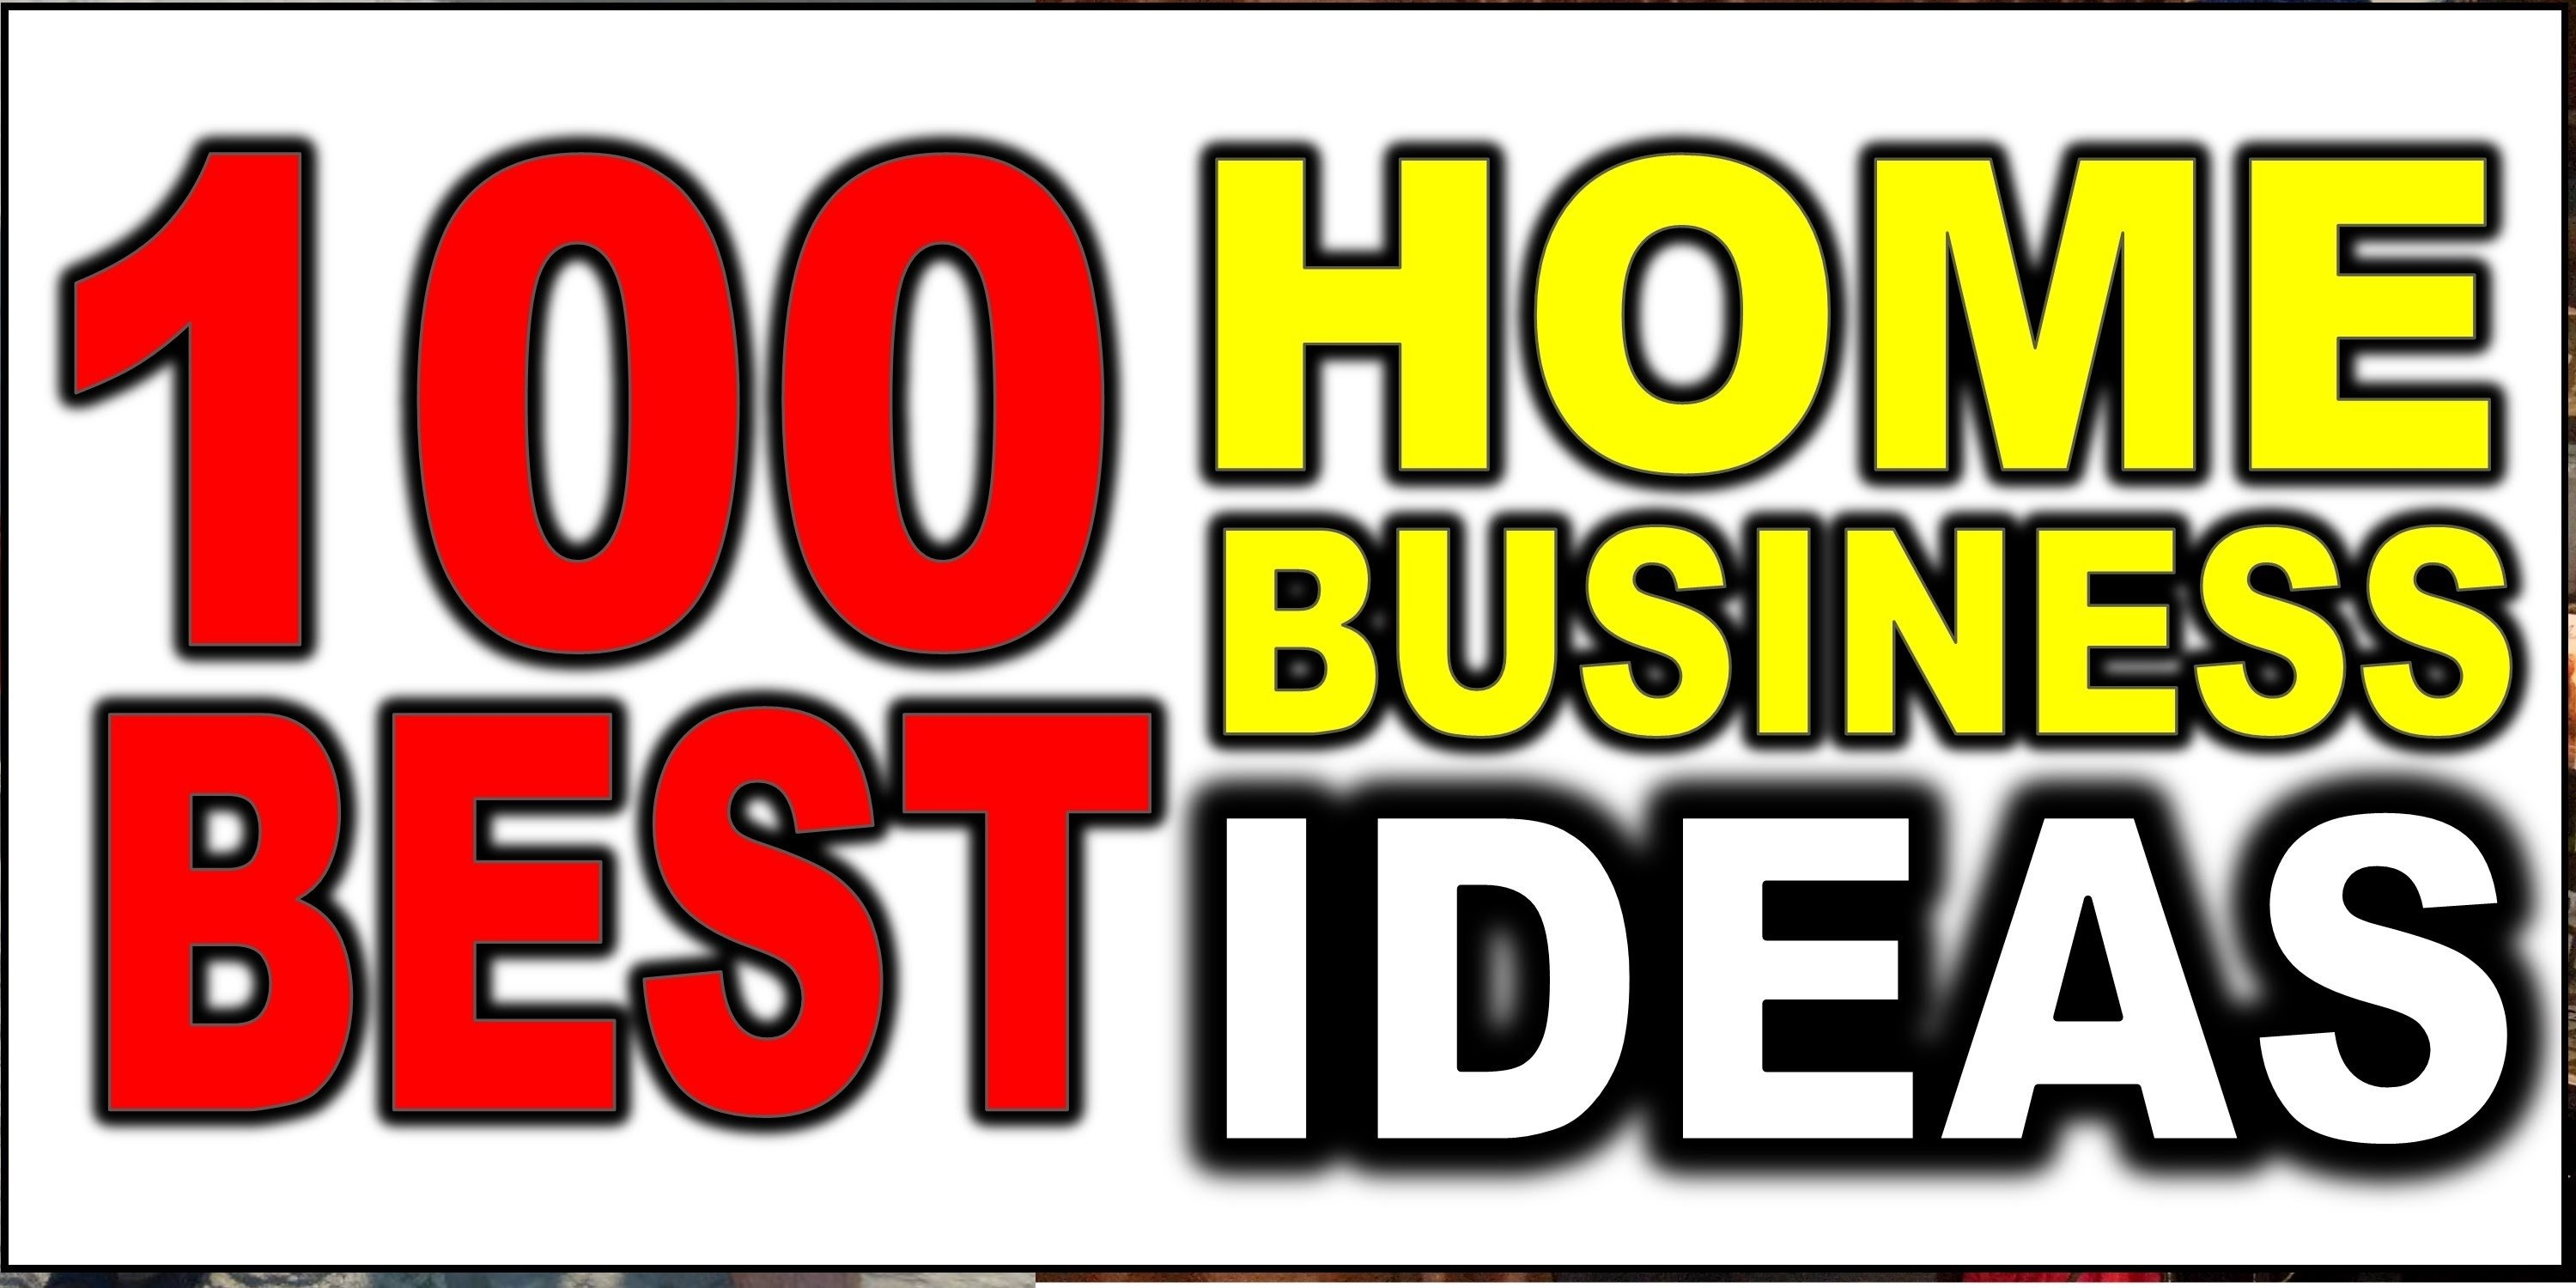 10 Best Great Ideas For Home Business 100 best home business ideas youtube 2 2020